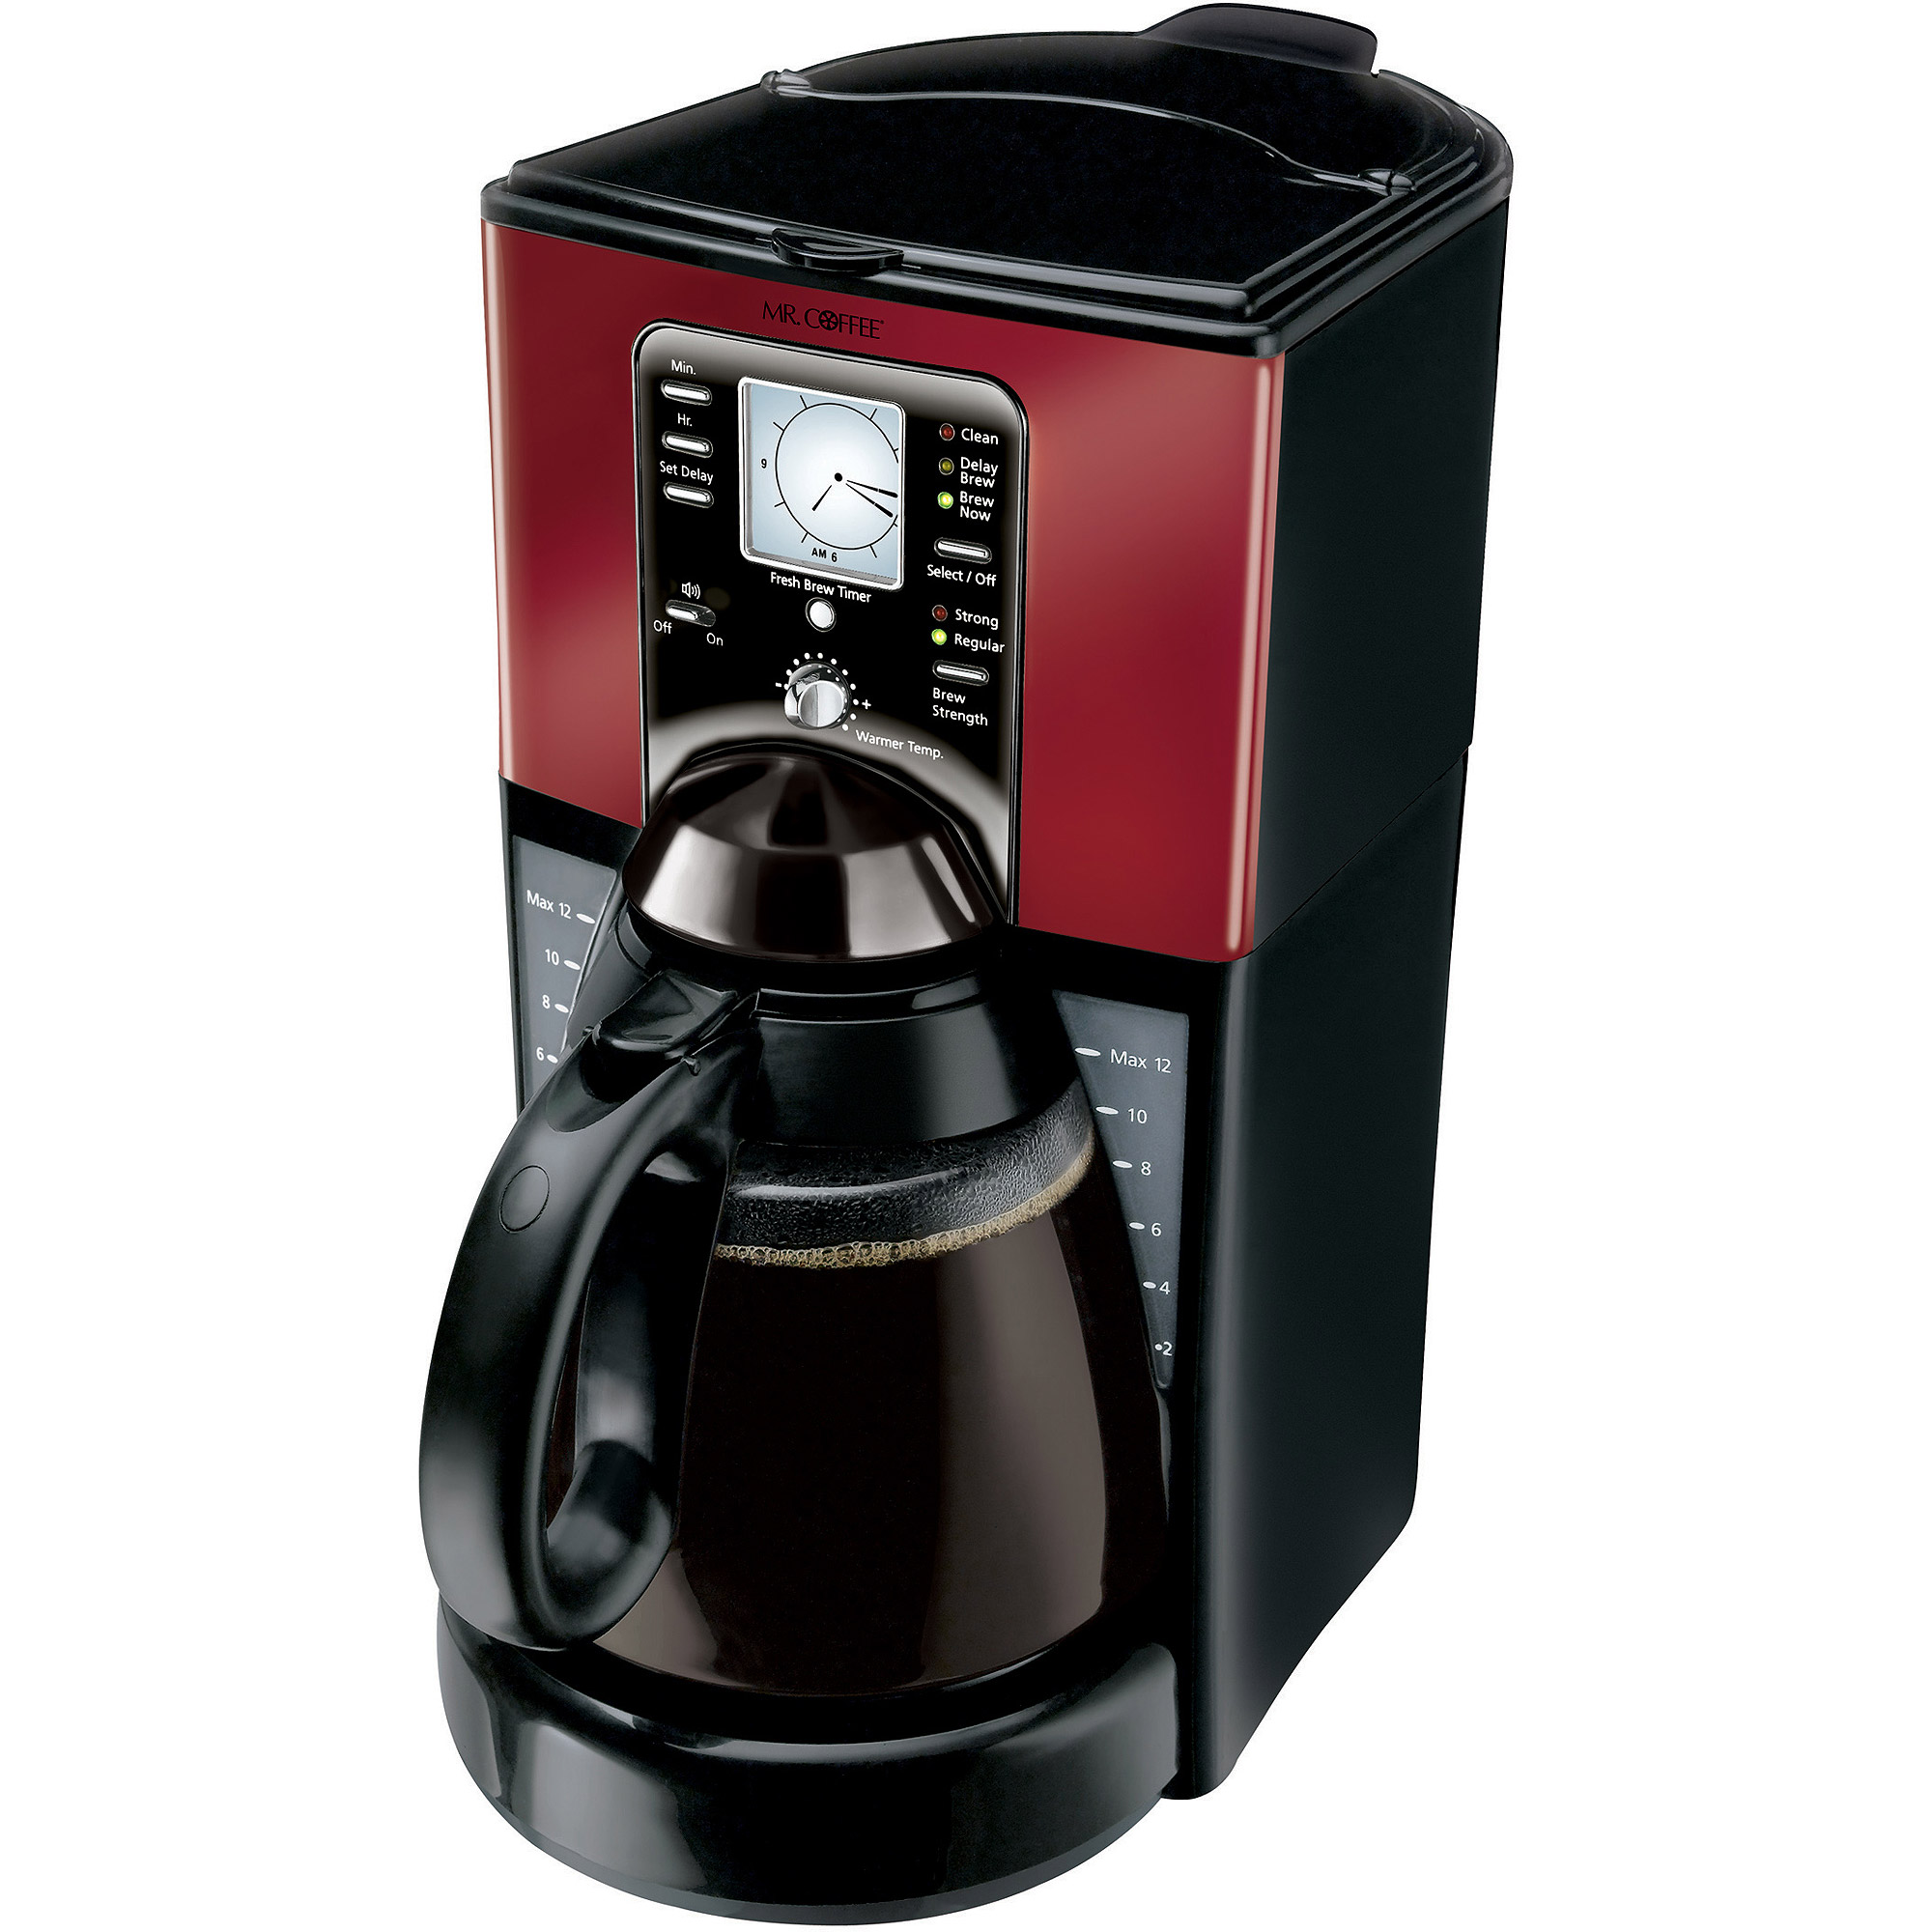 Mr. Coffee FTX Series 12-Cup Programmable Coffeemaker, FTX49-NP, Black